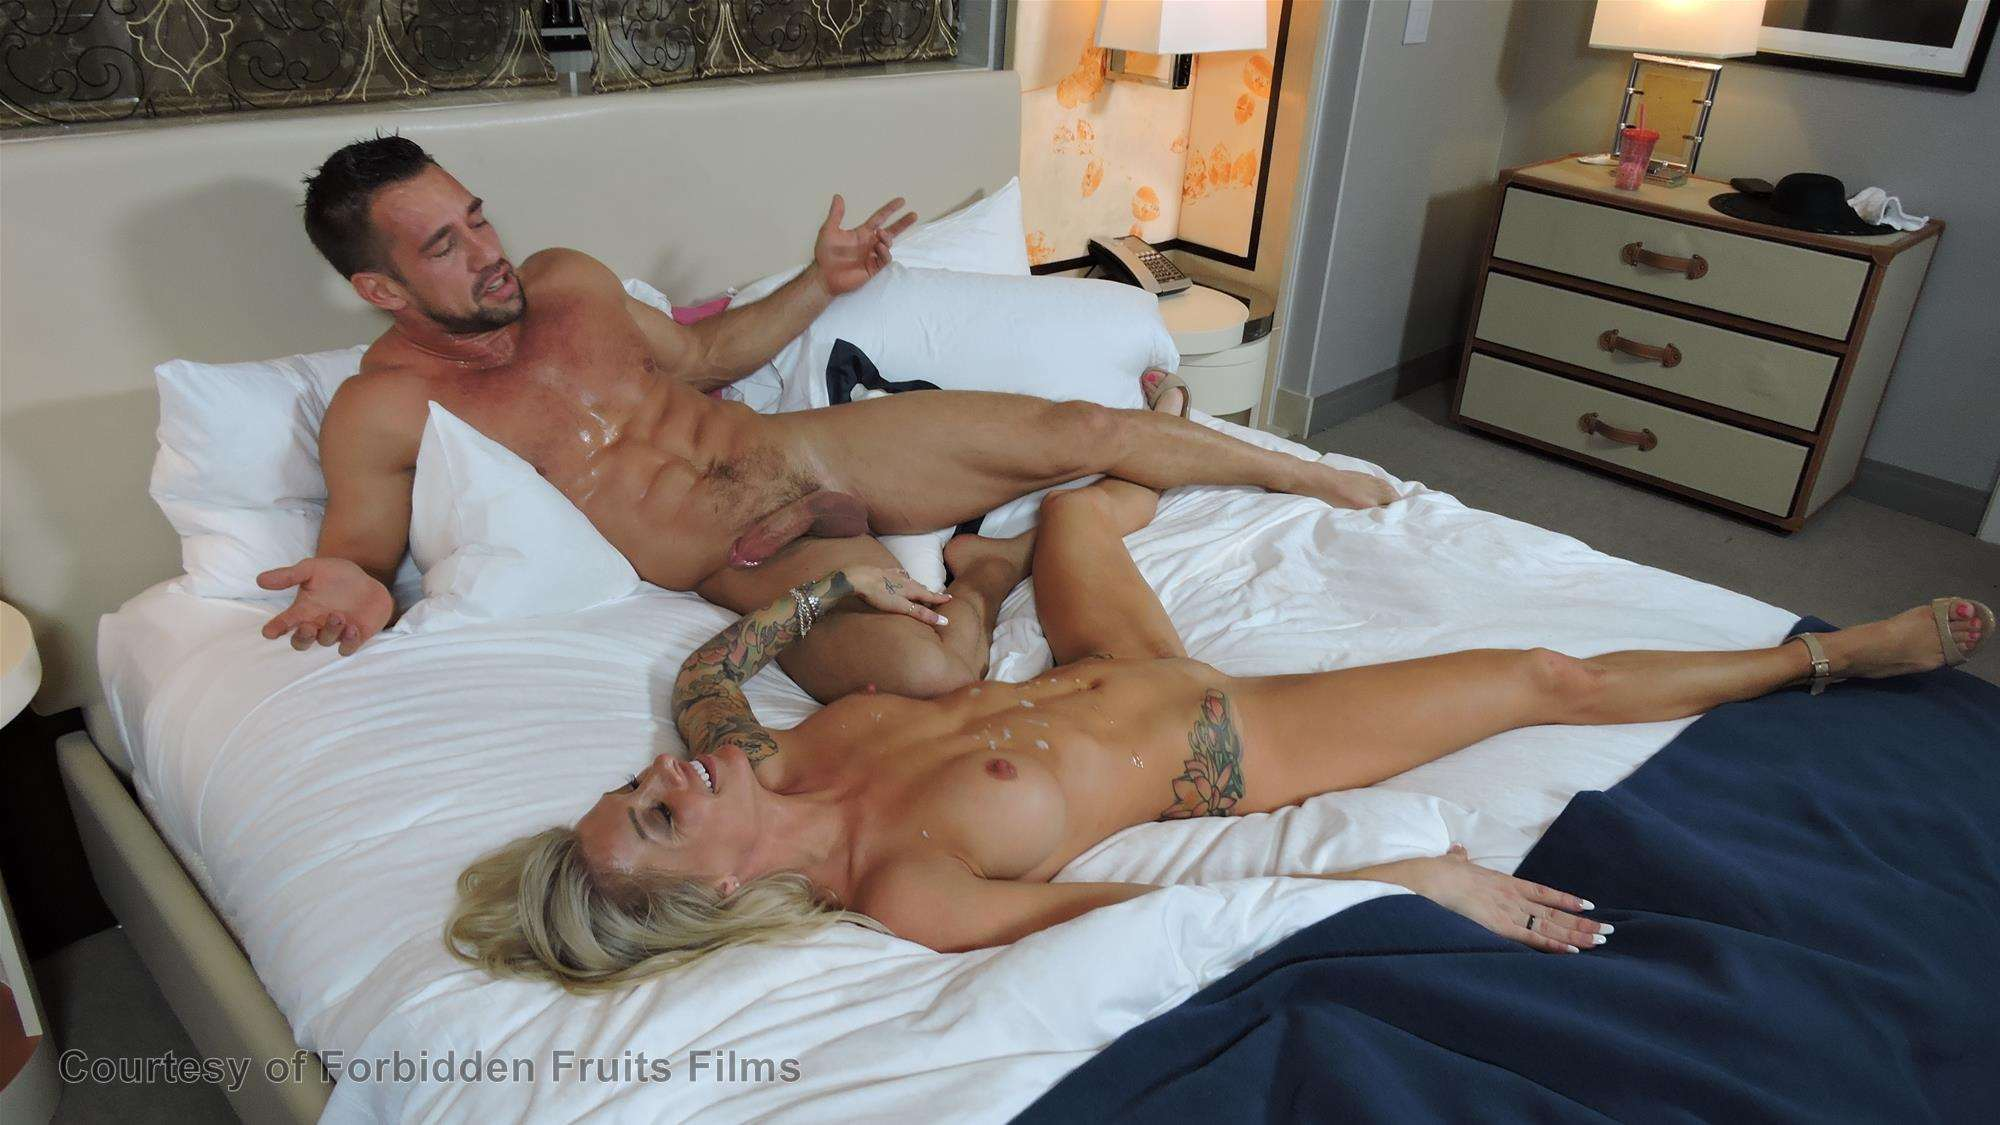 Forbidden Fruits Films, Jodi West, Sinn Sage, Synthia Fixx, Payton Hall, Johnny Castle, Codey Steele, T. Stone, All Sex, Family Roleplay, Mature, Absolute Best, Taboo Erotica, Anal sex, Lesbian, Lingerie, Absolute Best, Taboo Erotica, Sexual tension, taboo tales